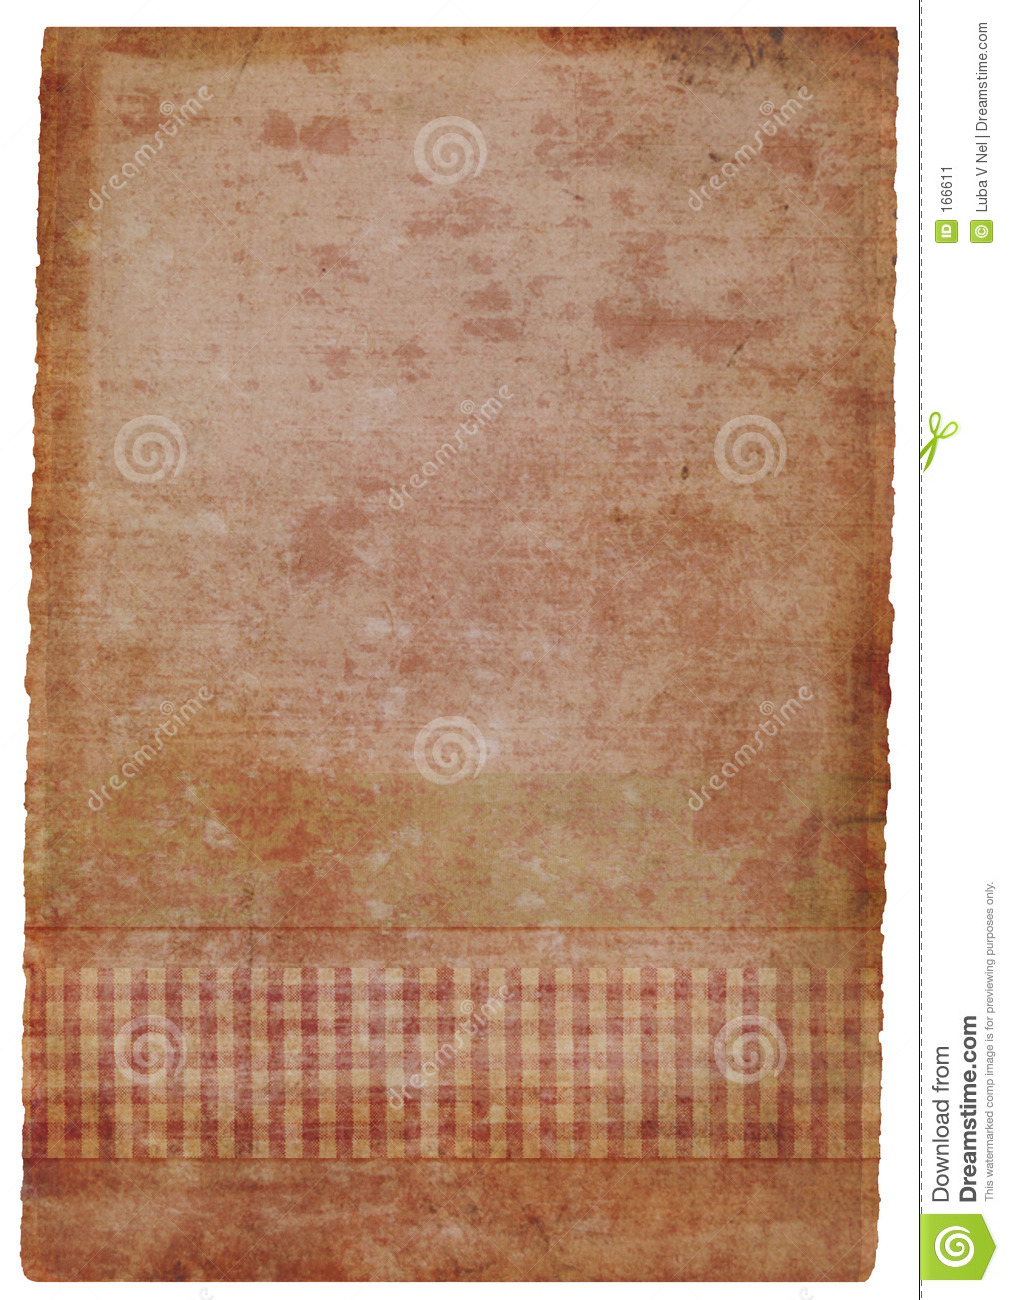 grunge stained hand-made piece of paper in pink